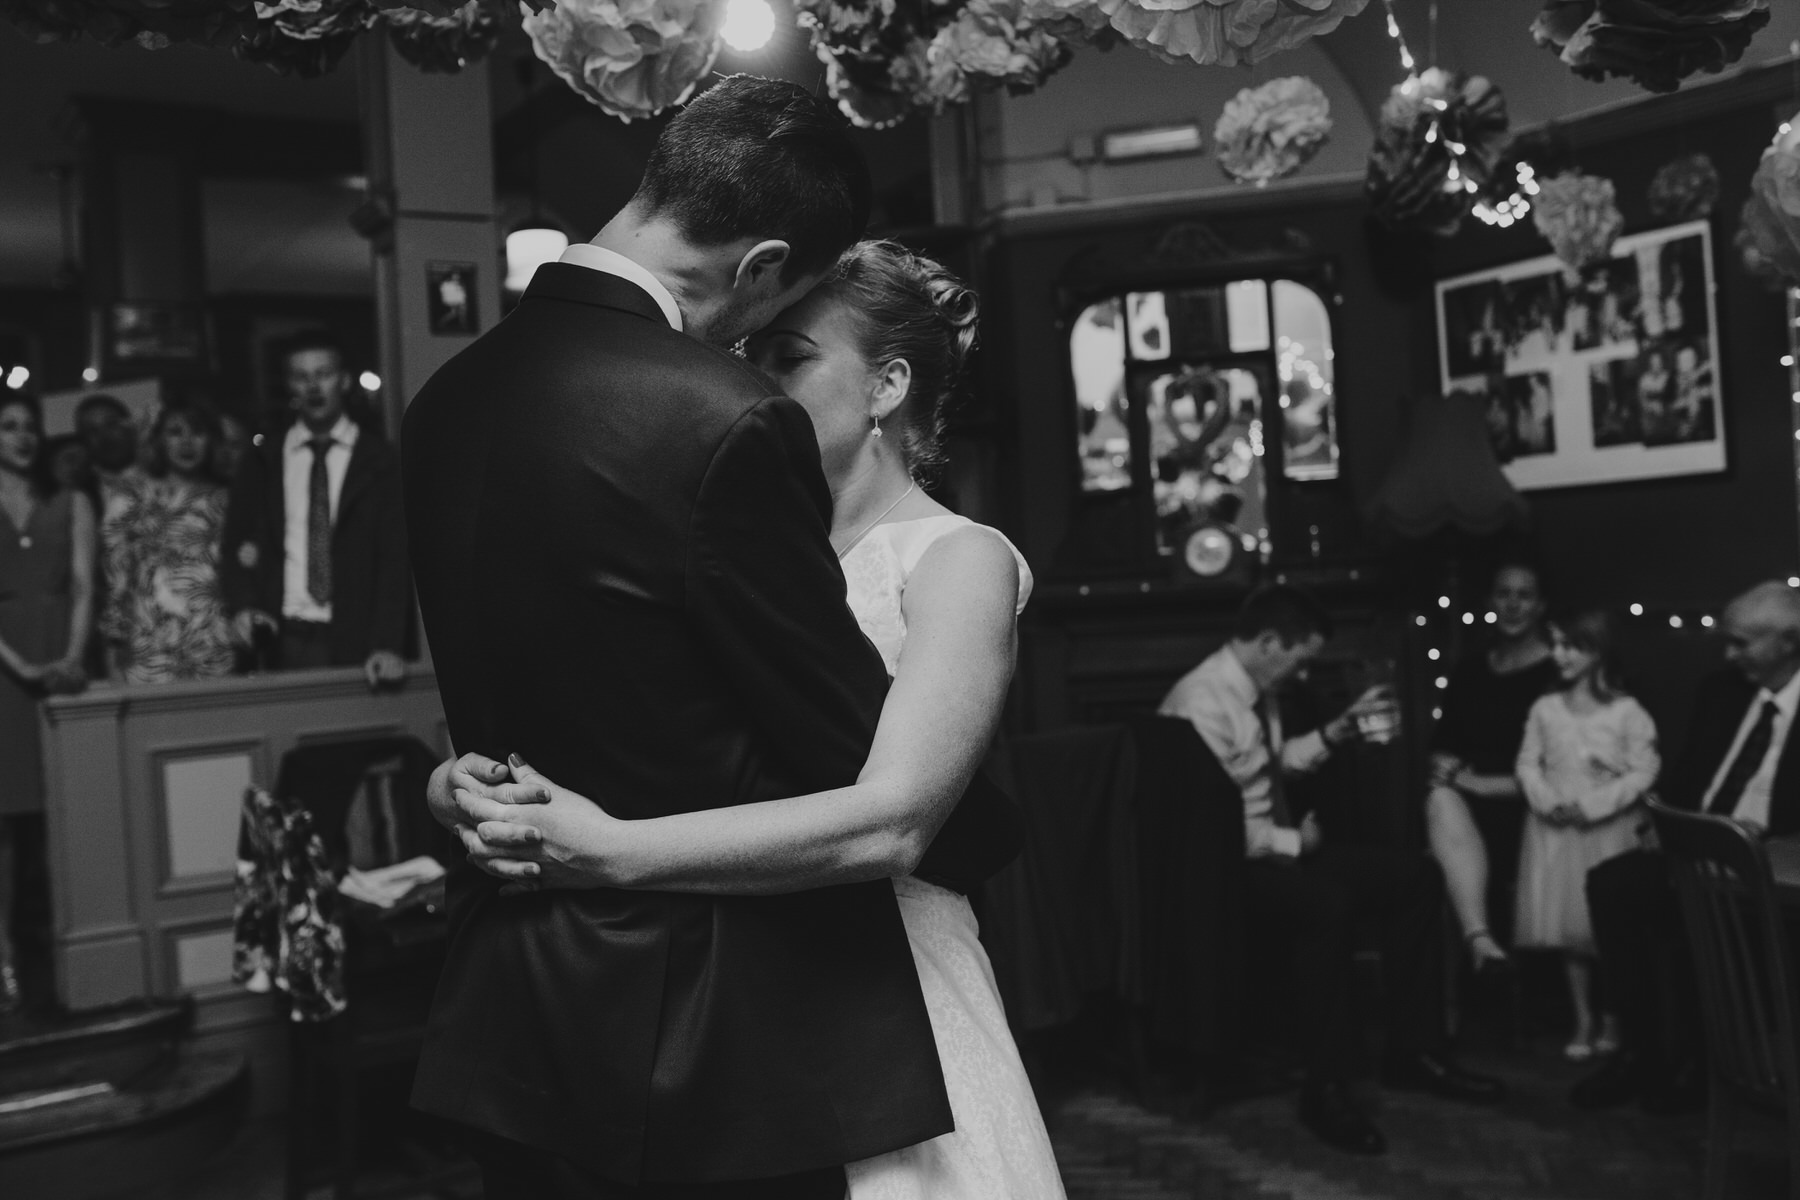 310-Londesborough-Pub-wedding-first-dance-BW.jpg